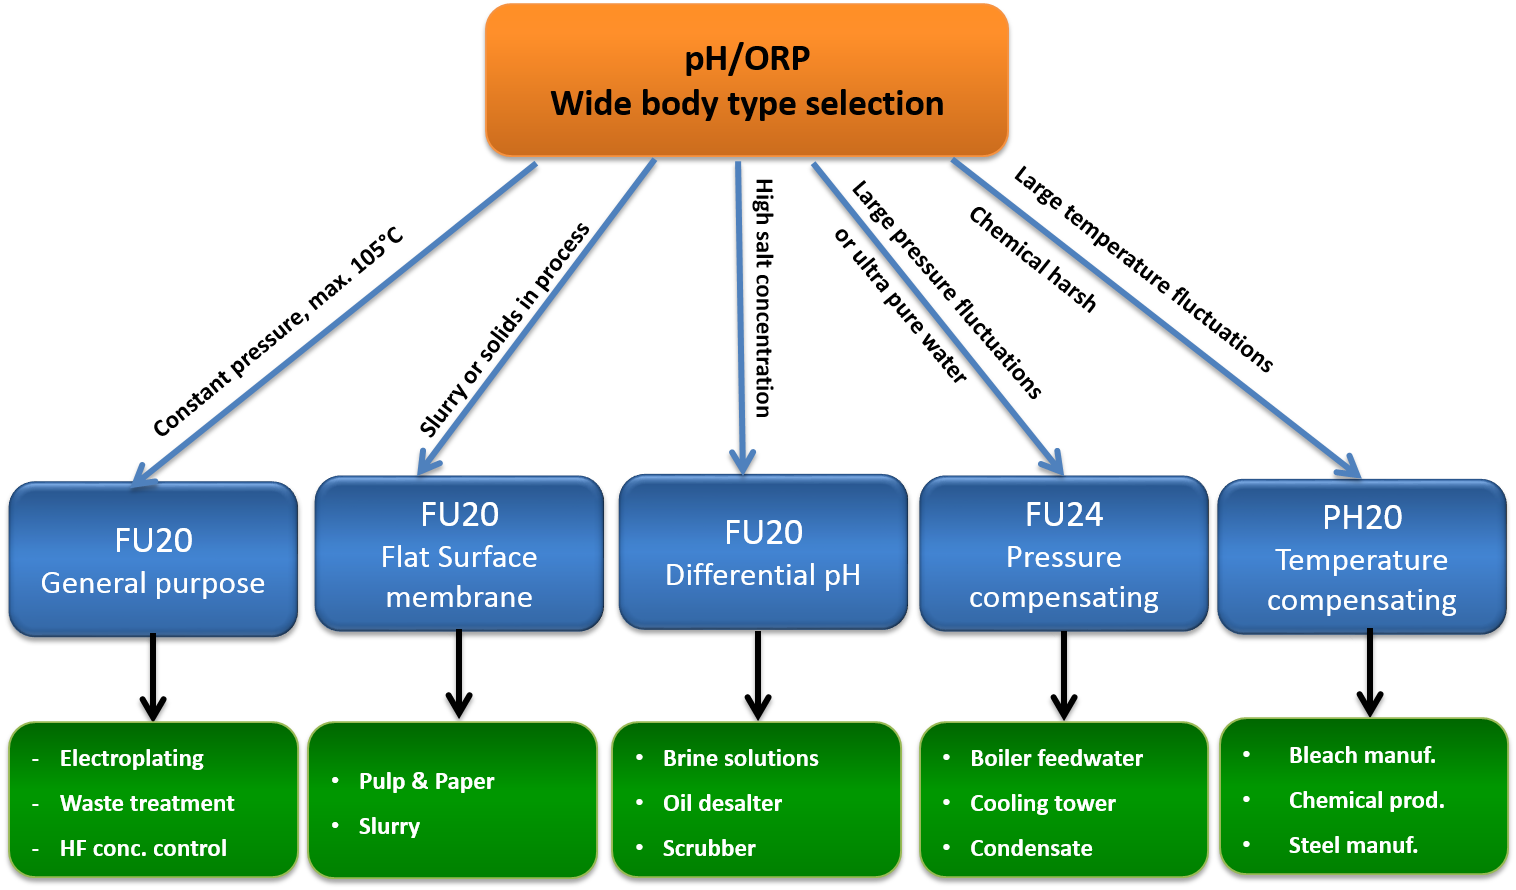 All In One Ph Orp Sensor Series Fu20 Fu24 Ph20 Yokogawa America Block Diagram Sbd Field Transmitter Temperature Solutions Please Use The Charts Below To Help Guide You Proper Selection Of Which Version Is Best For Your Application